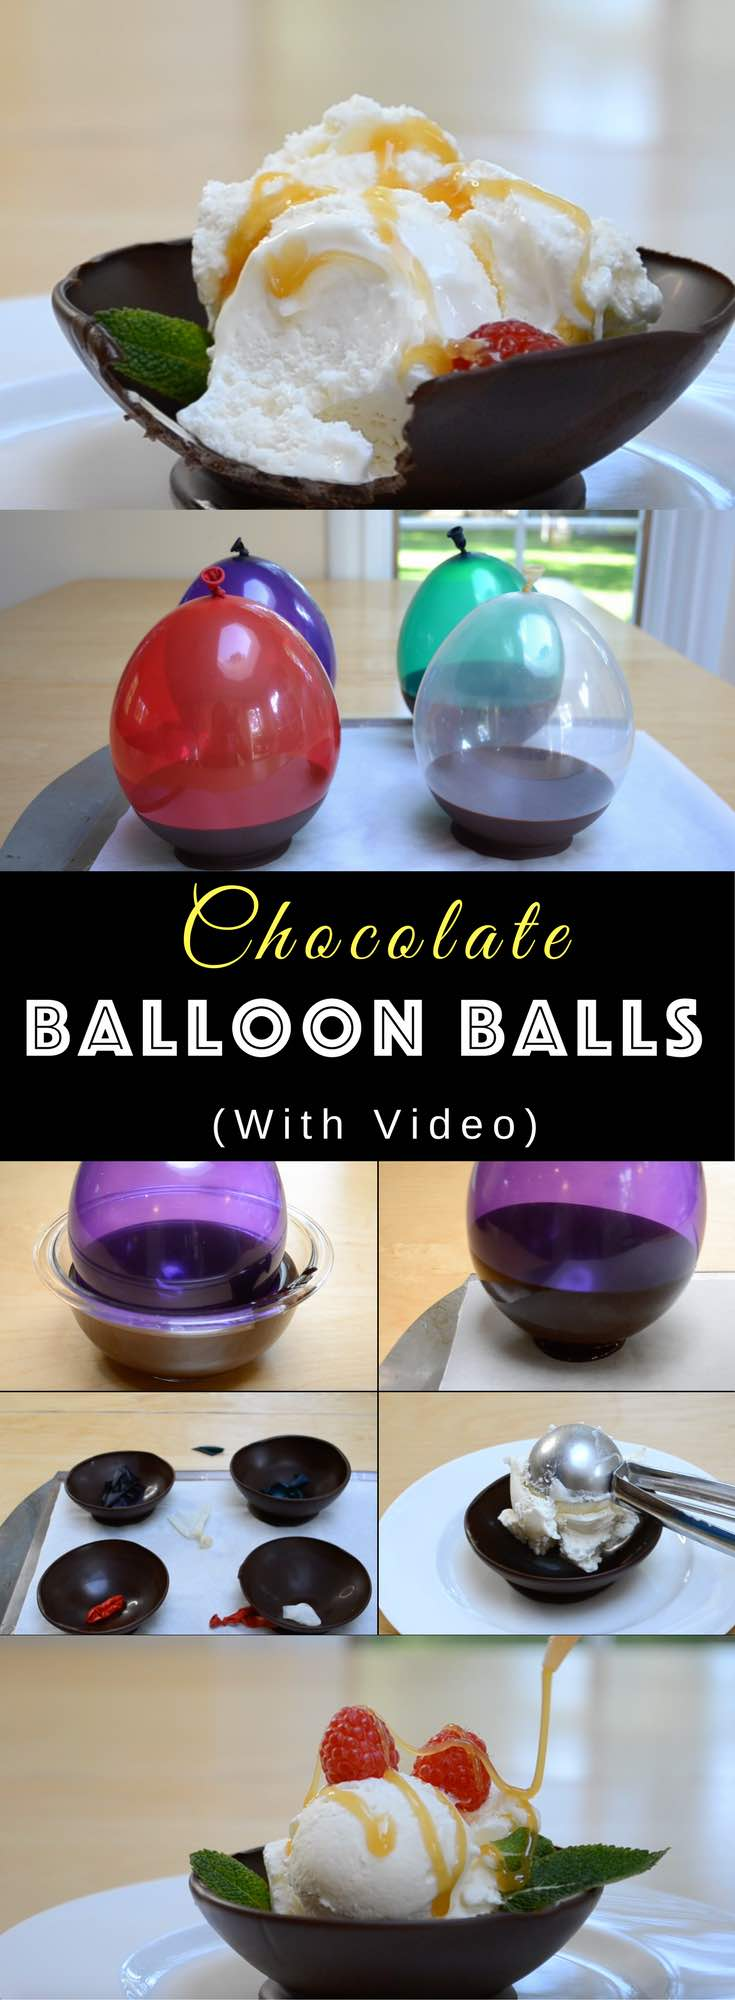 DIY Chocolate Balloon Bowls Recipe | TipBuzz